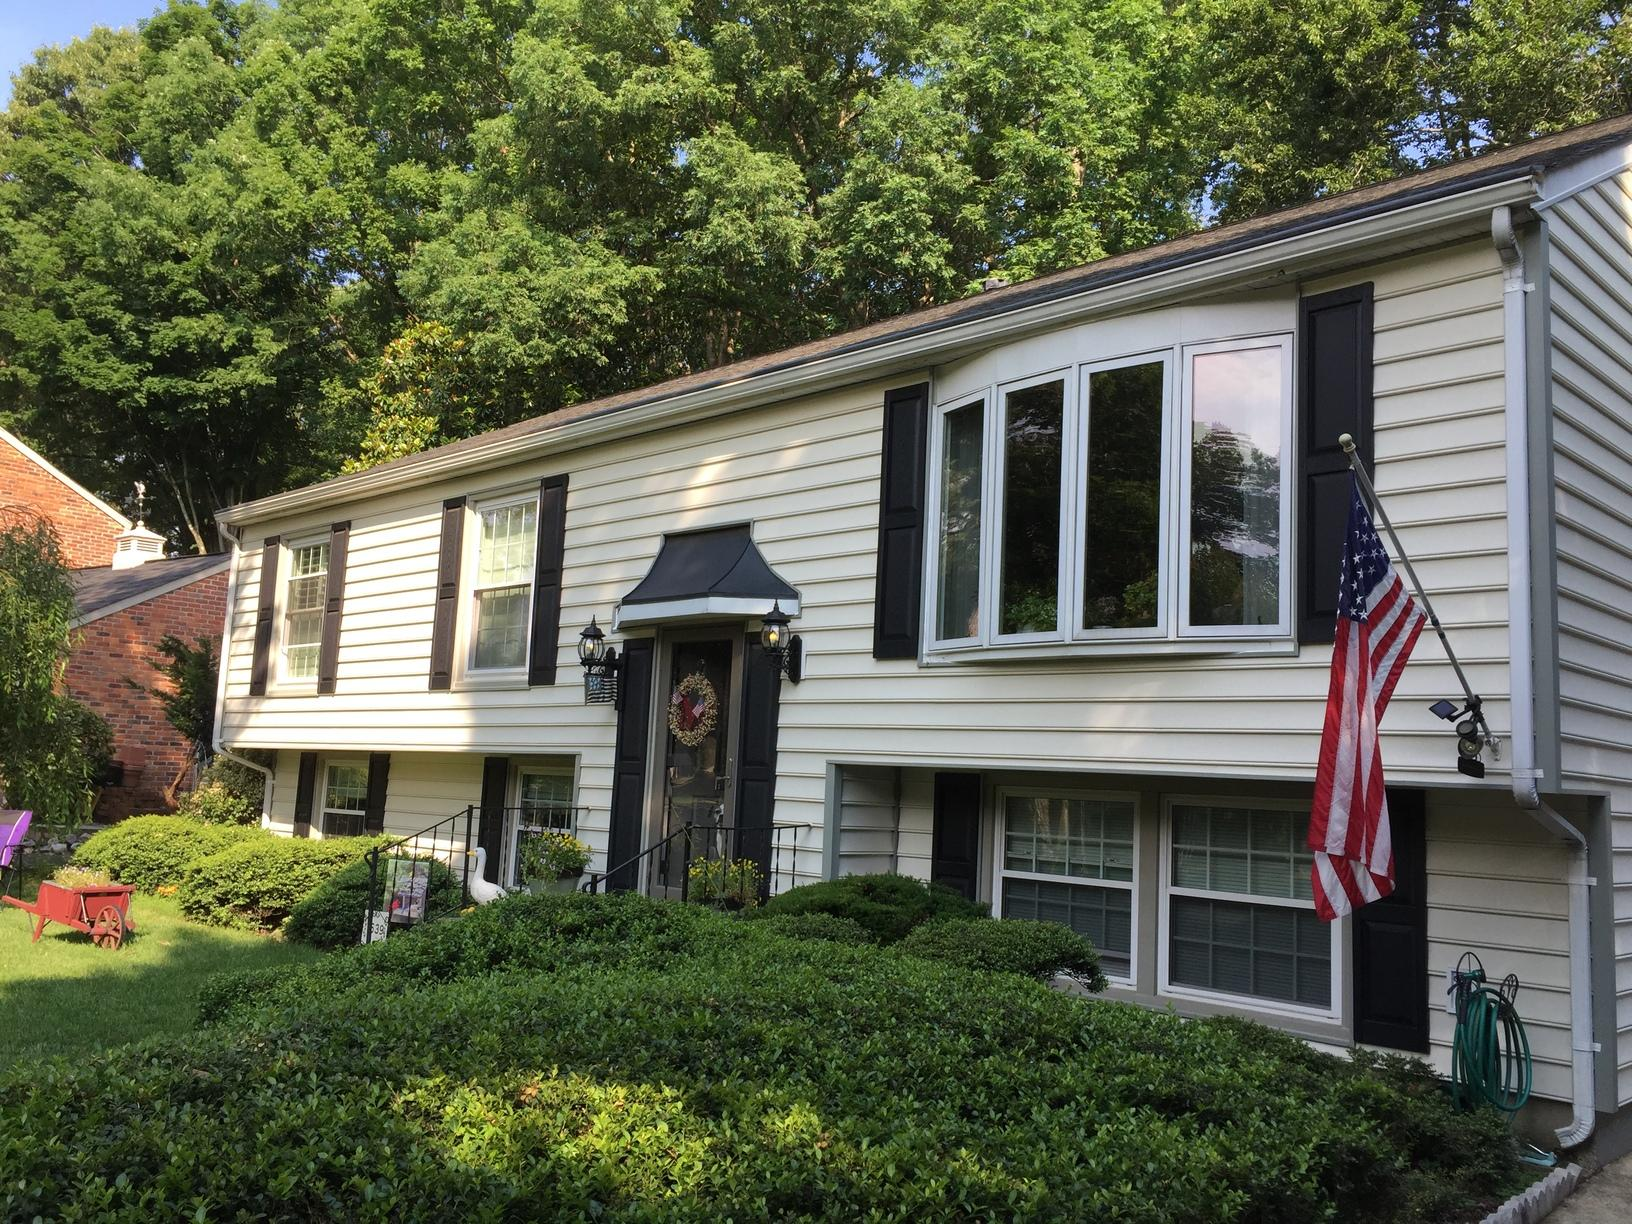 Siding Replacement in Crofton, MD - After Photo